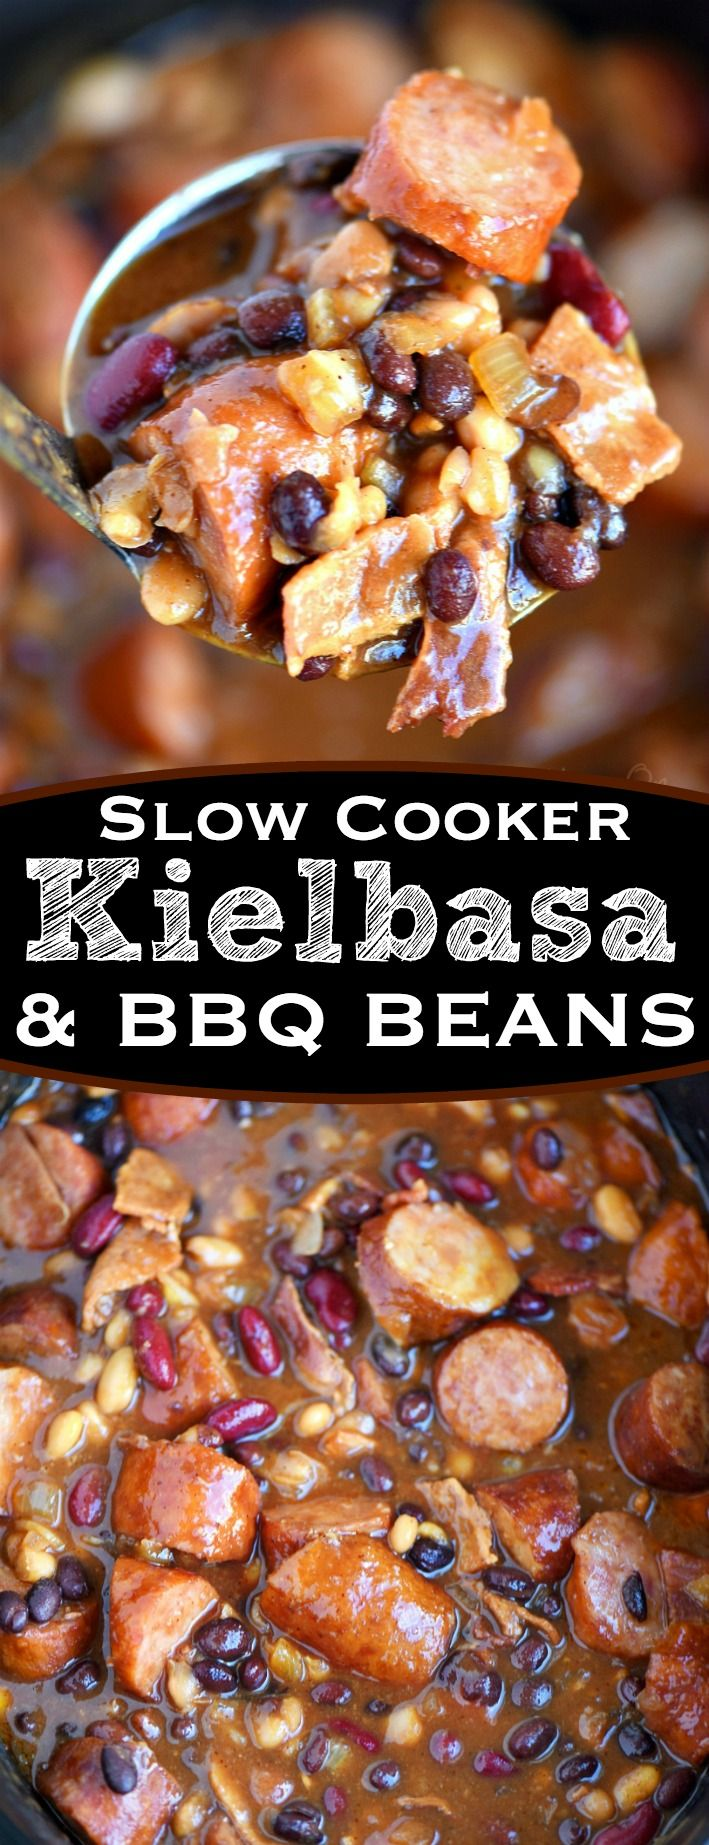 Slow Cooker Kielbasa and Barbecue Beans is the perfect chilly day recipe! Made with three different